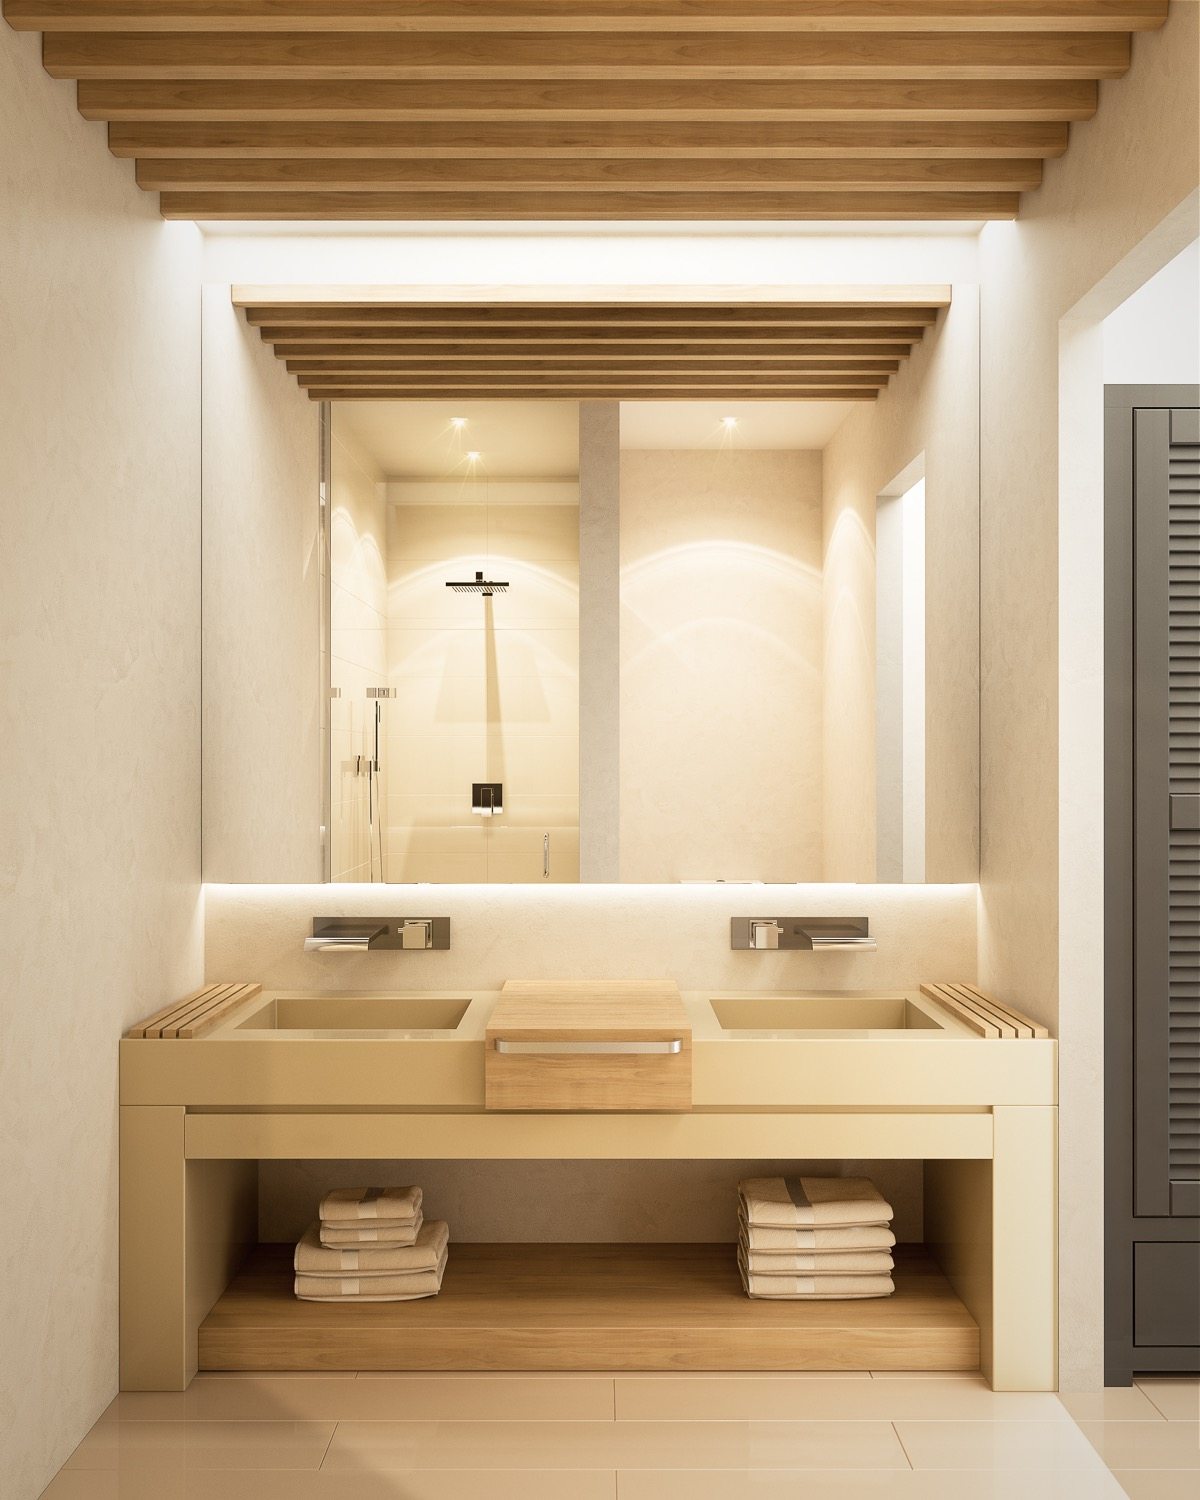 40 Modern Bathroom Vanities That Overflow With Style images 22